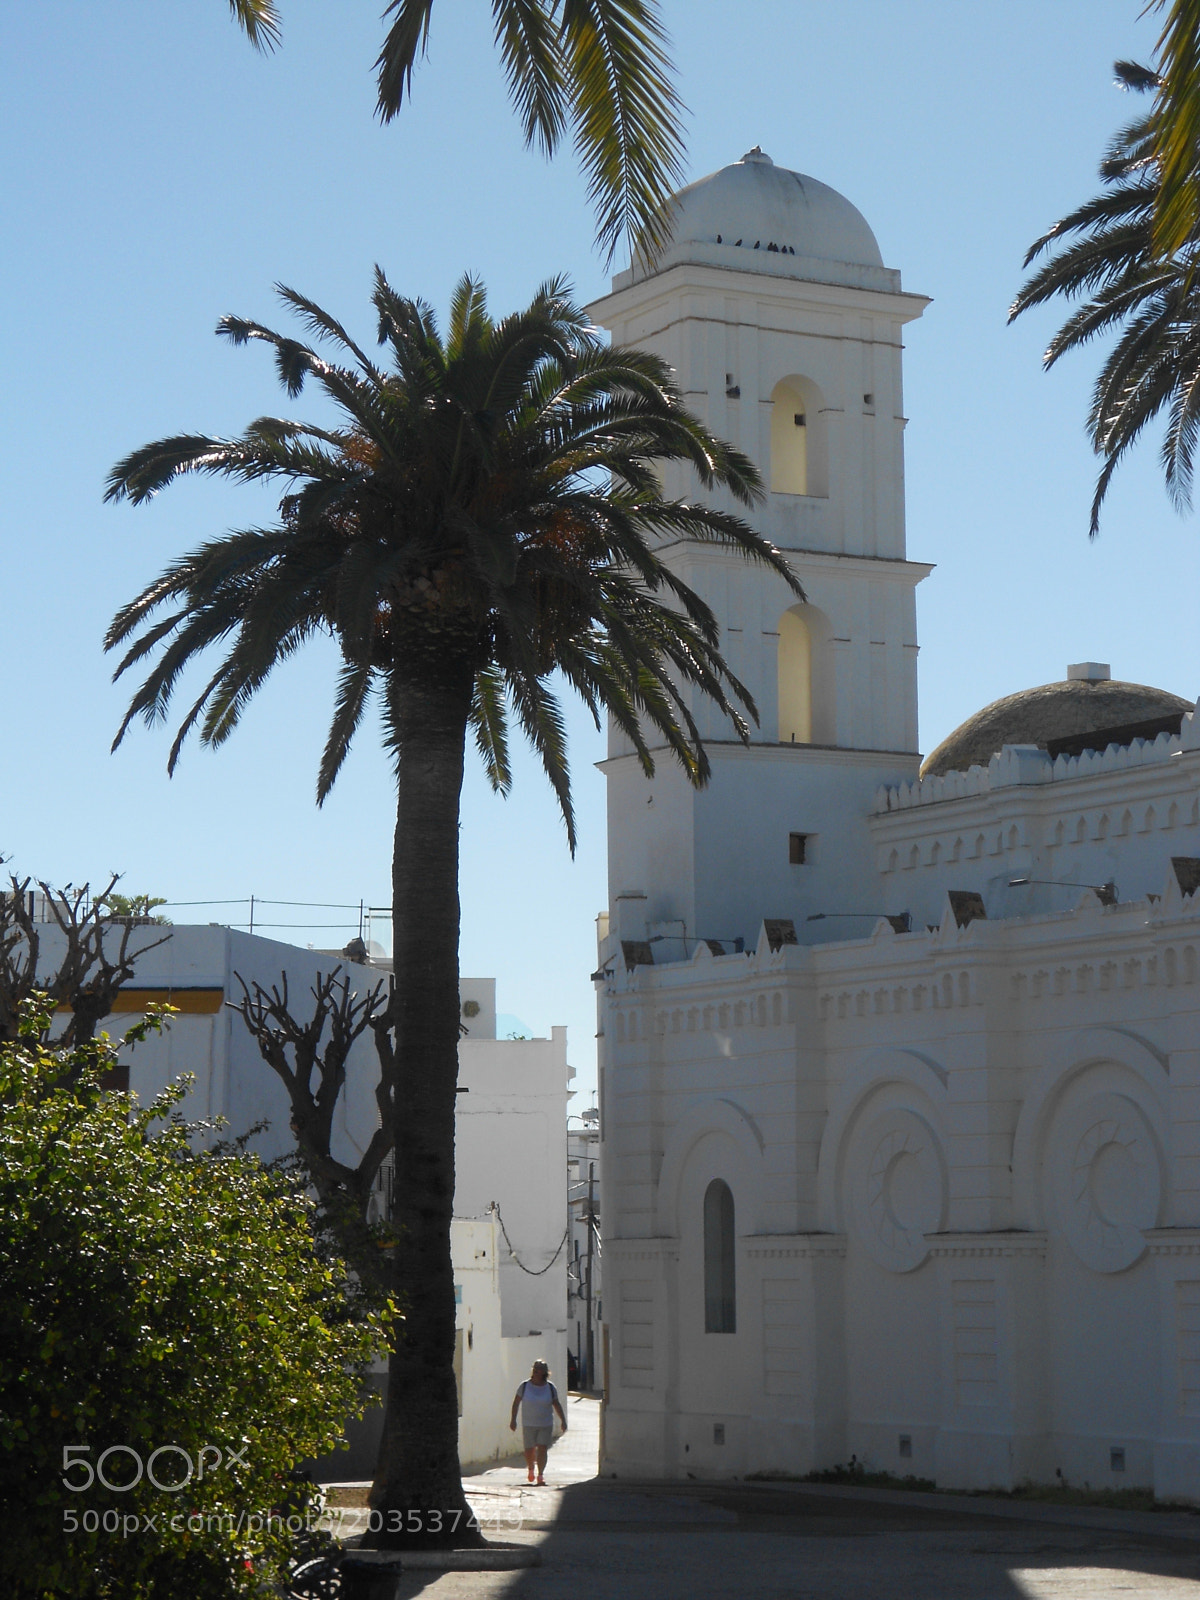 """Nikon COOLPIX S4150 sample photo. """"Palm and church tower"""" photography"""